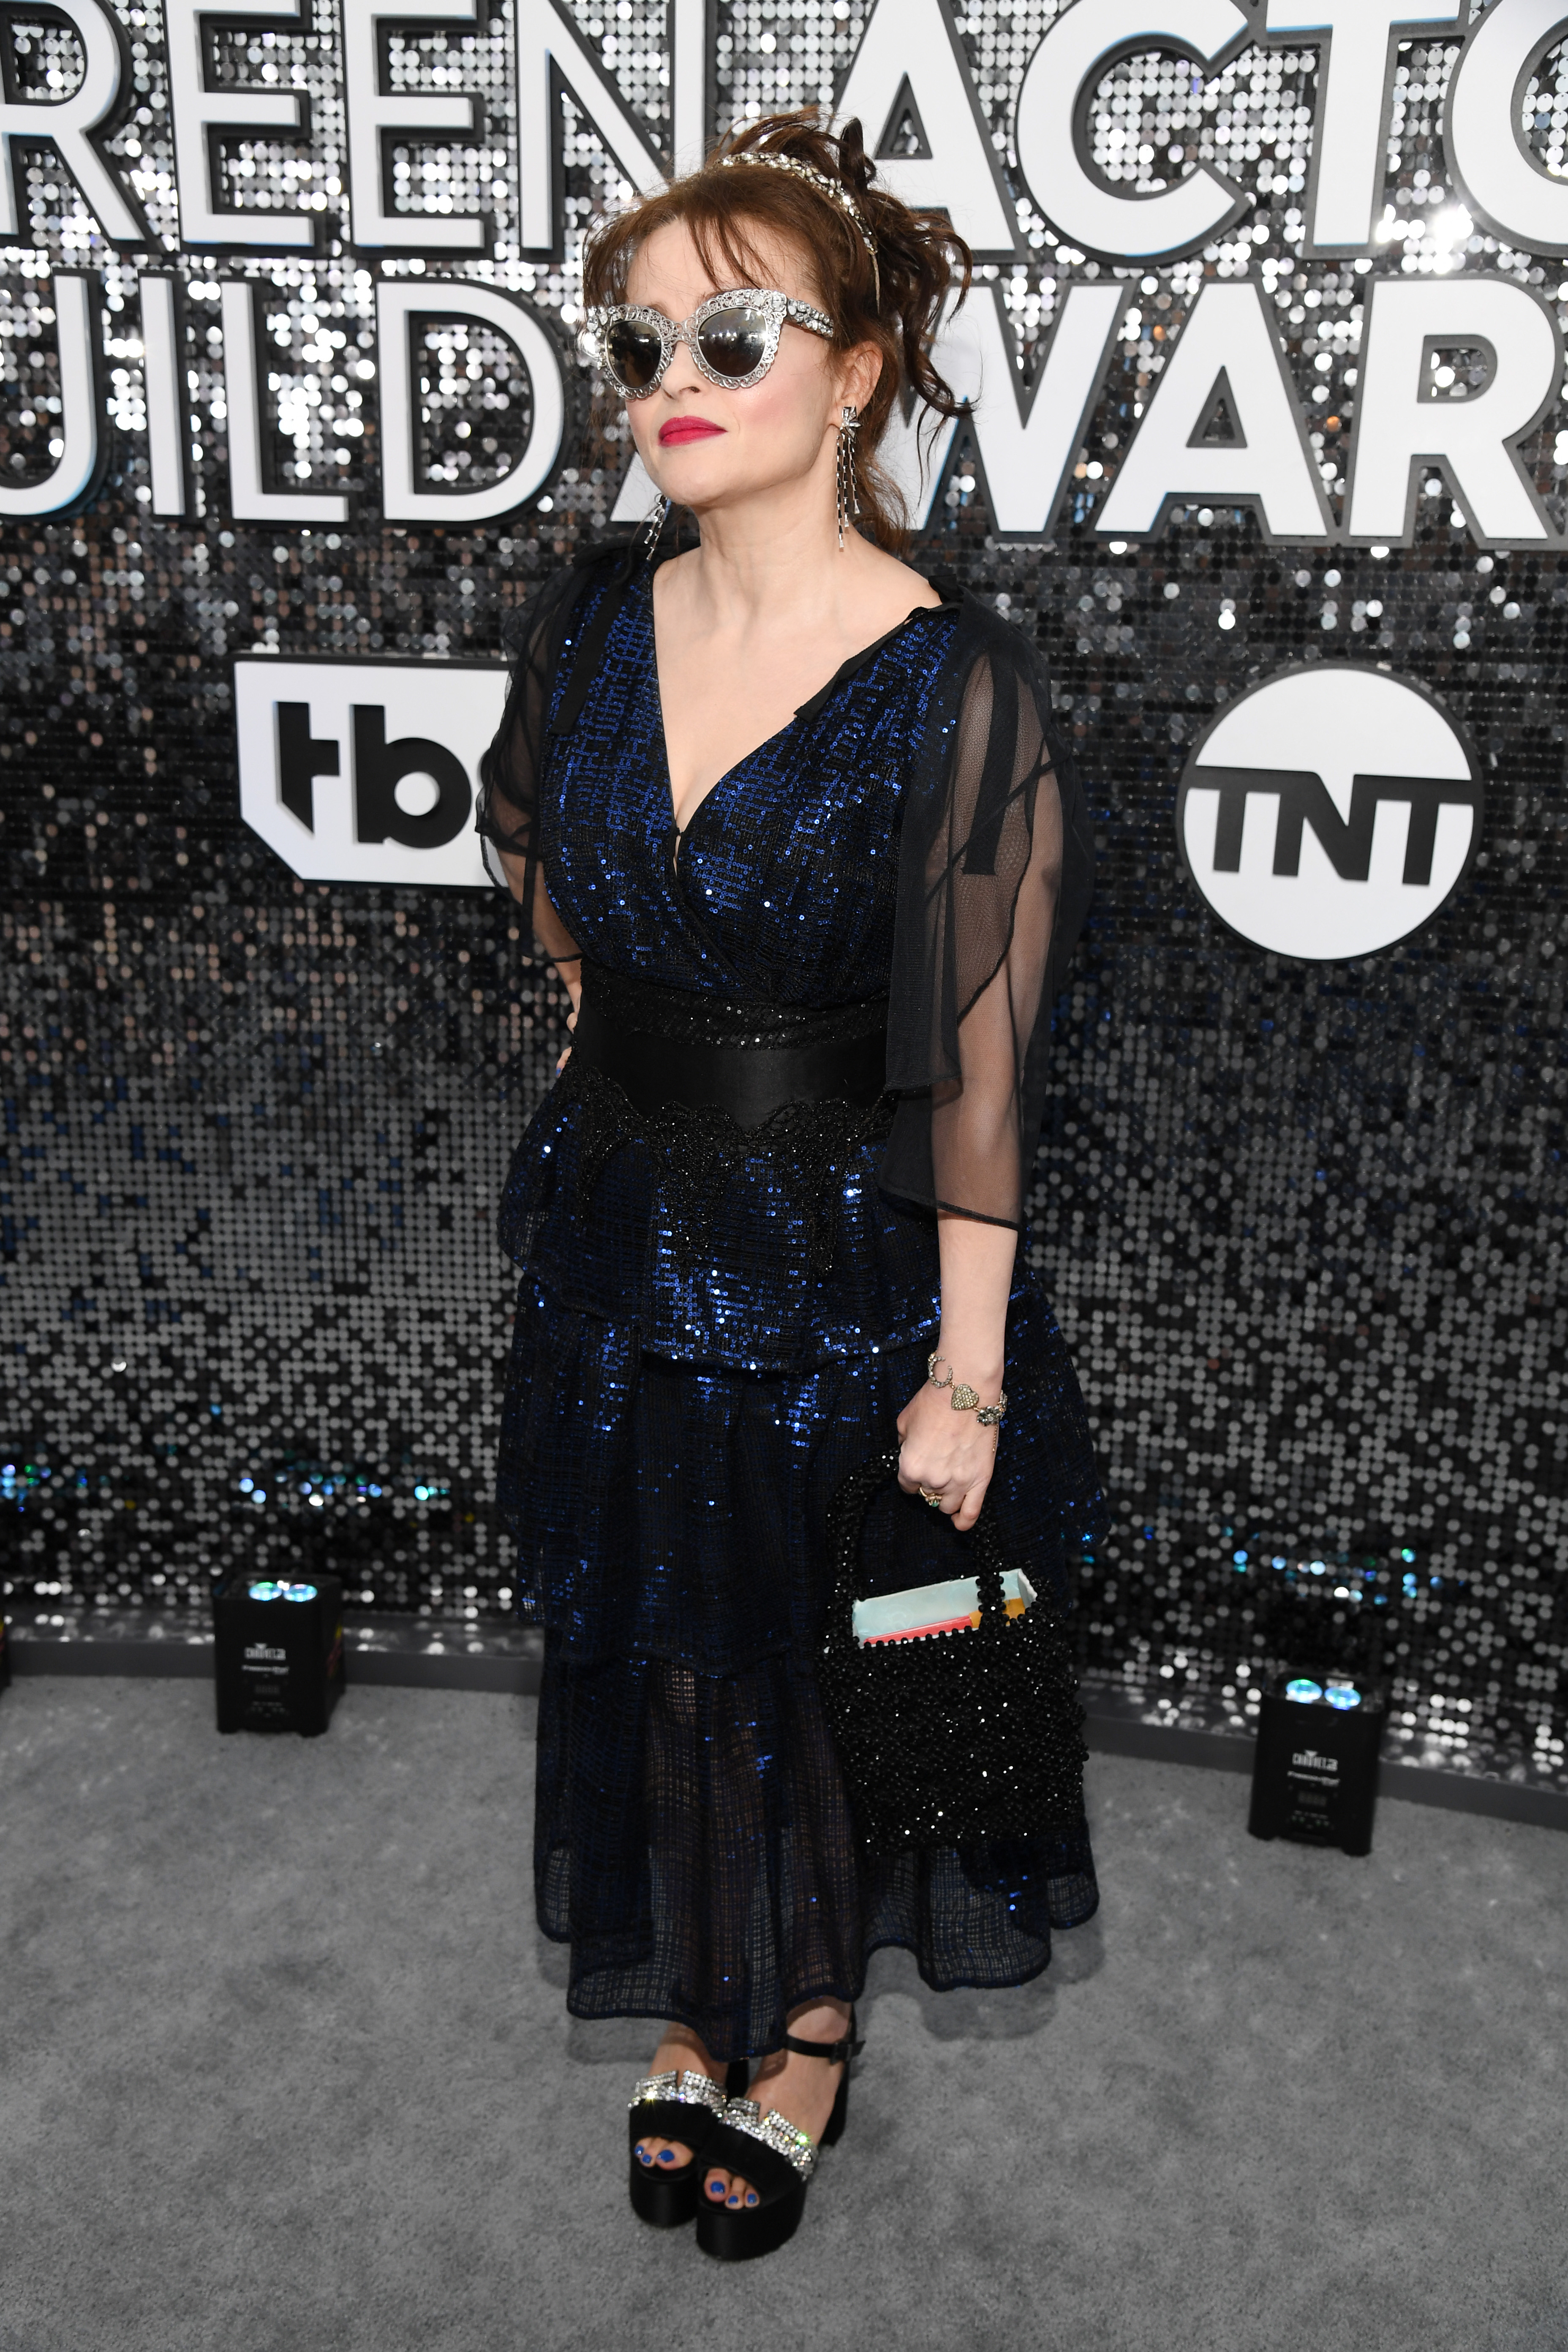 LOS ANGELES, CALIFORNIA - JANUARY 19: Helena Bonham Carter attends the 26th Annual Screen ActorsGuild Awards at The Shrine Auditorium on January 19, 2020 in Los Angeles, California. 721336 (Photo by Kevin Mazur/Getty Images for Turner)